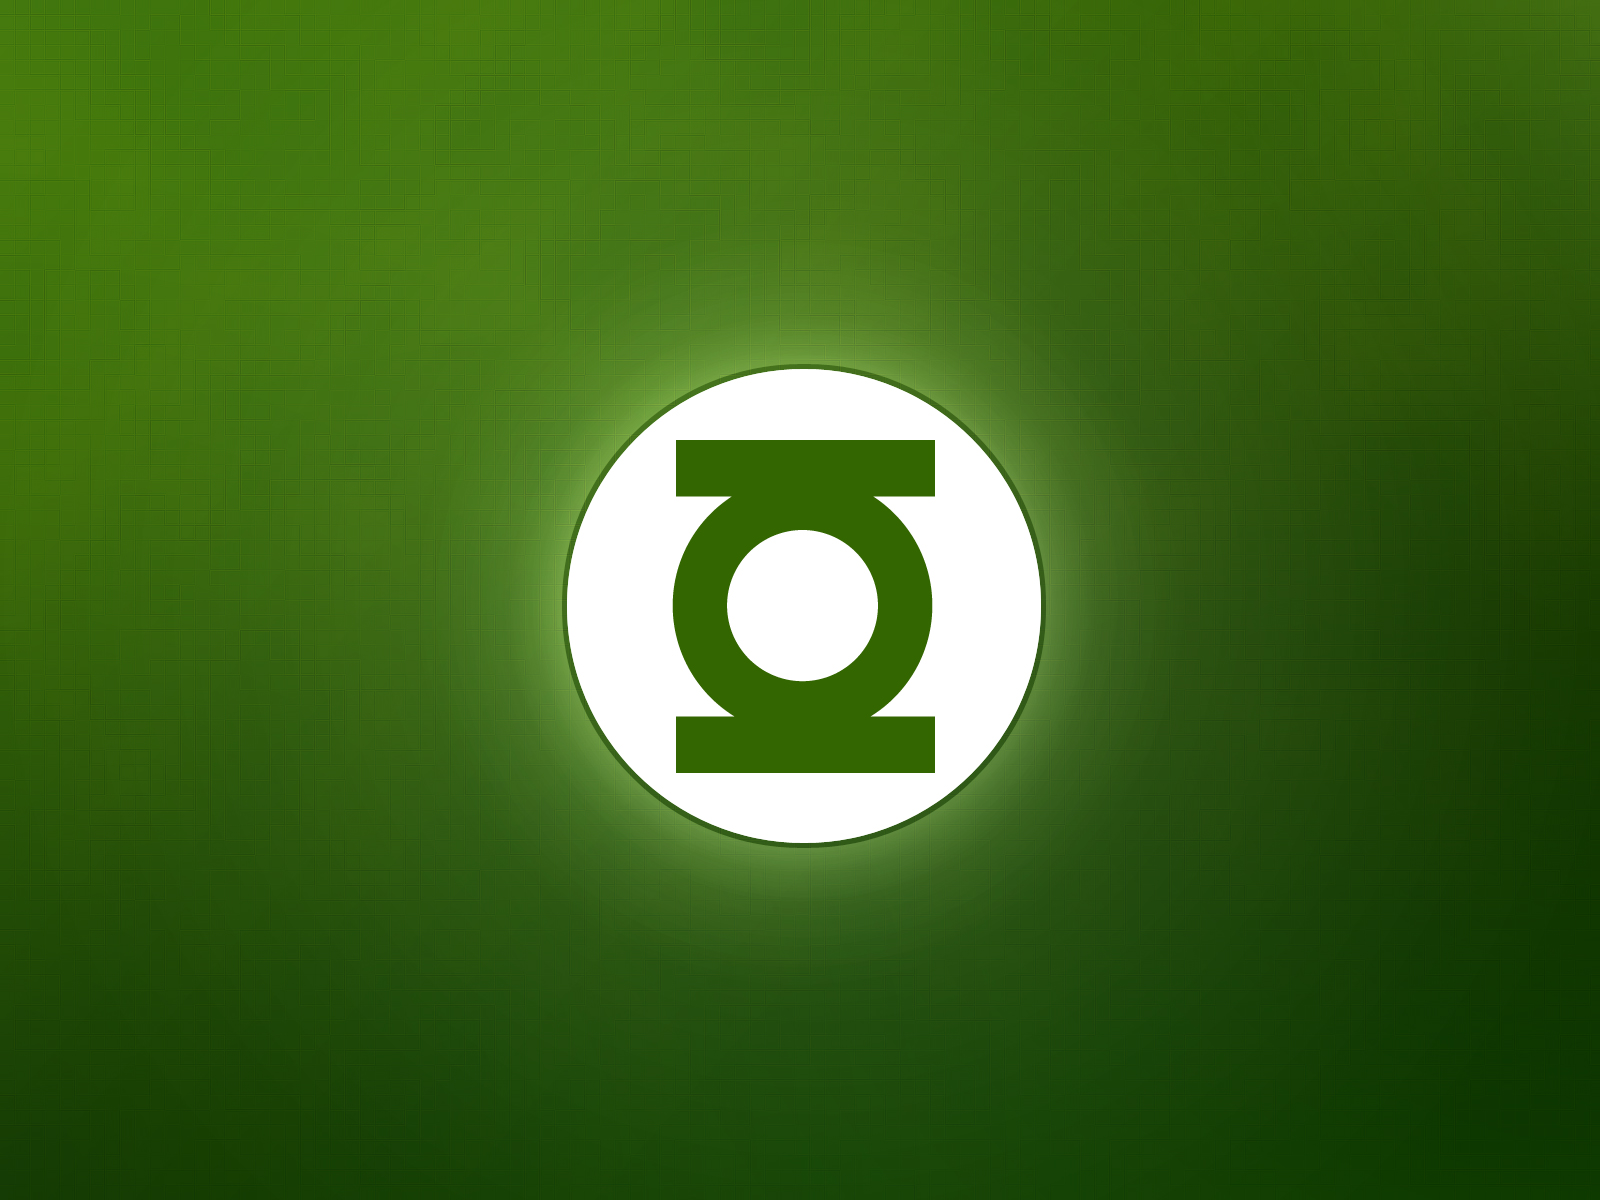 EZ PC Wallpaper: Green Lantern Wallpapers